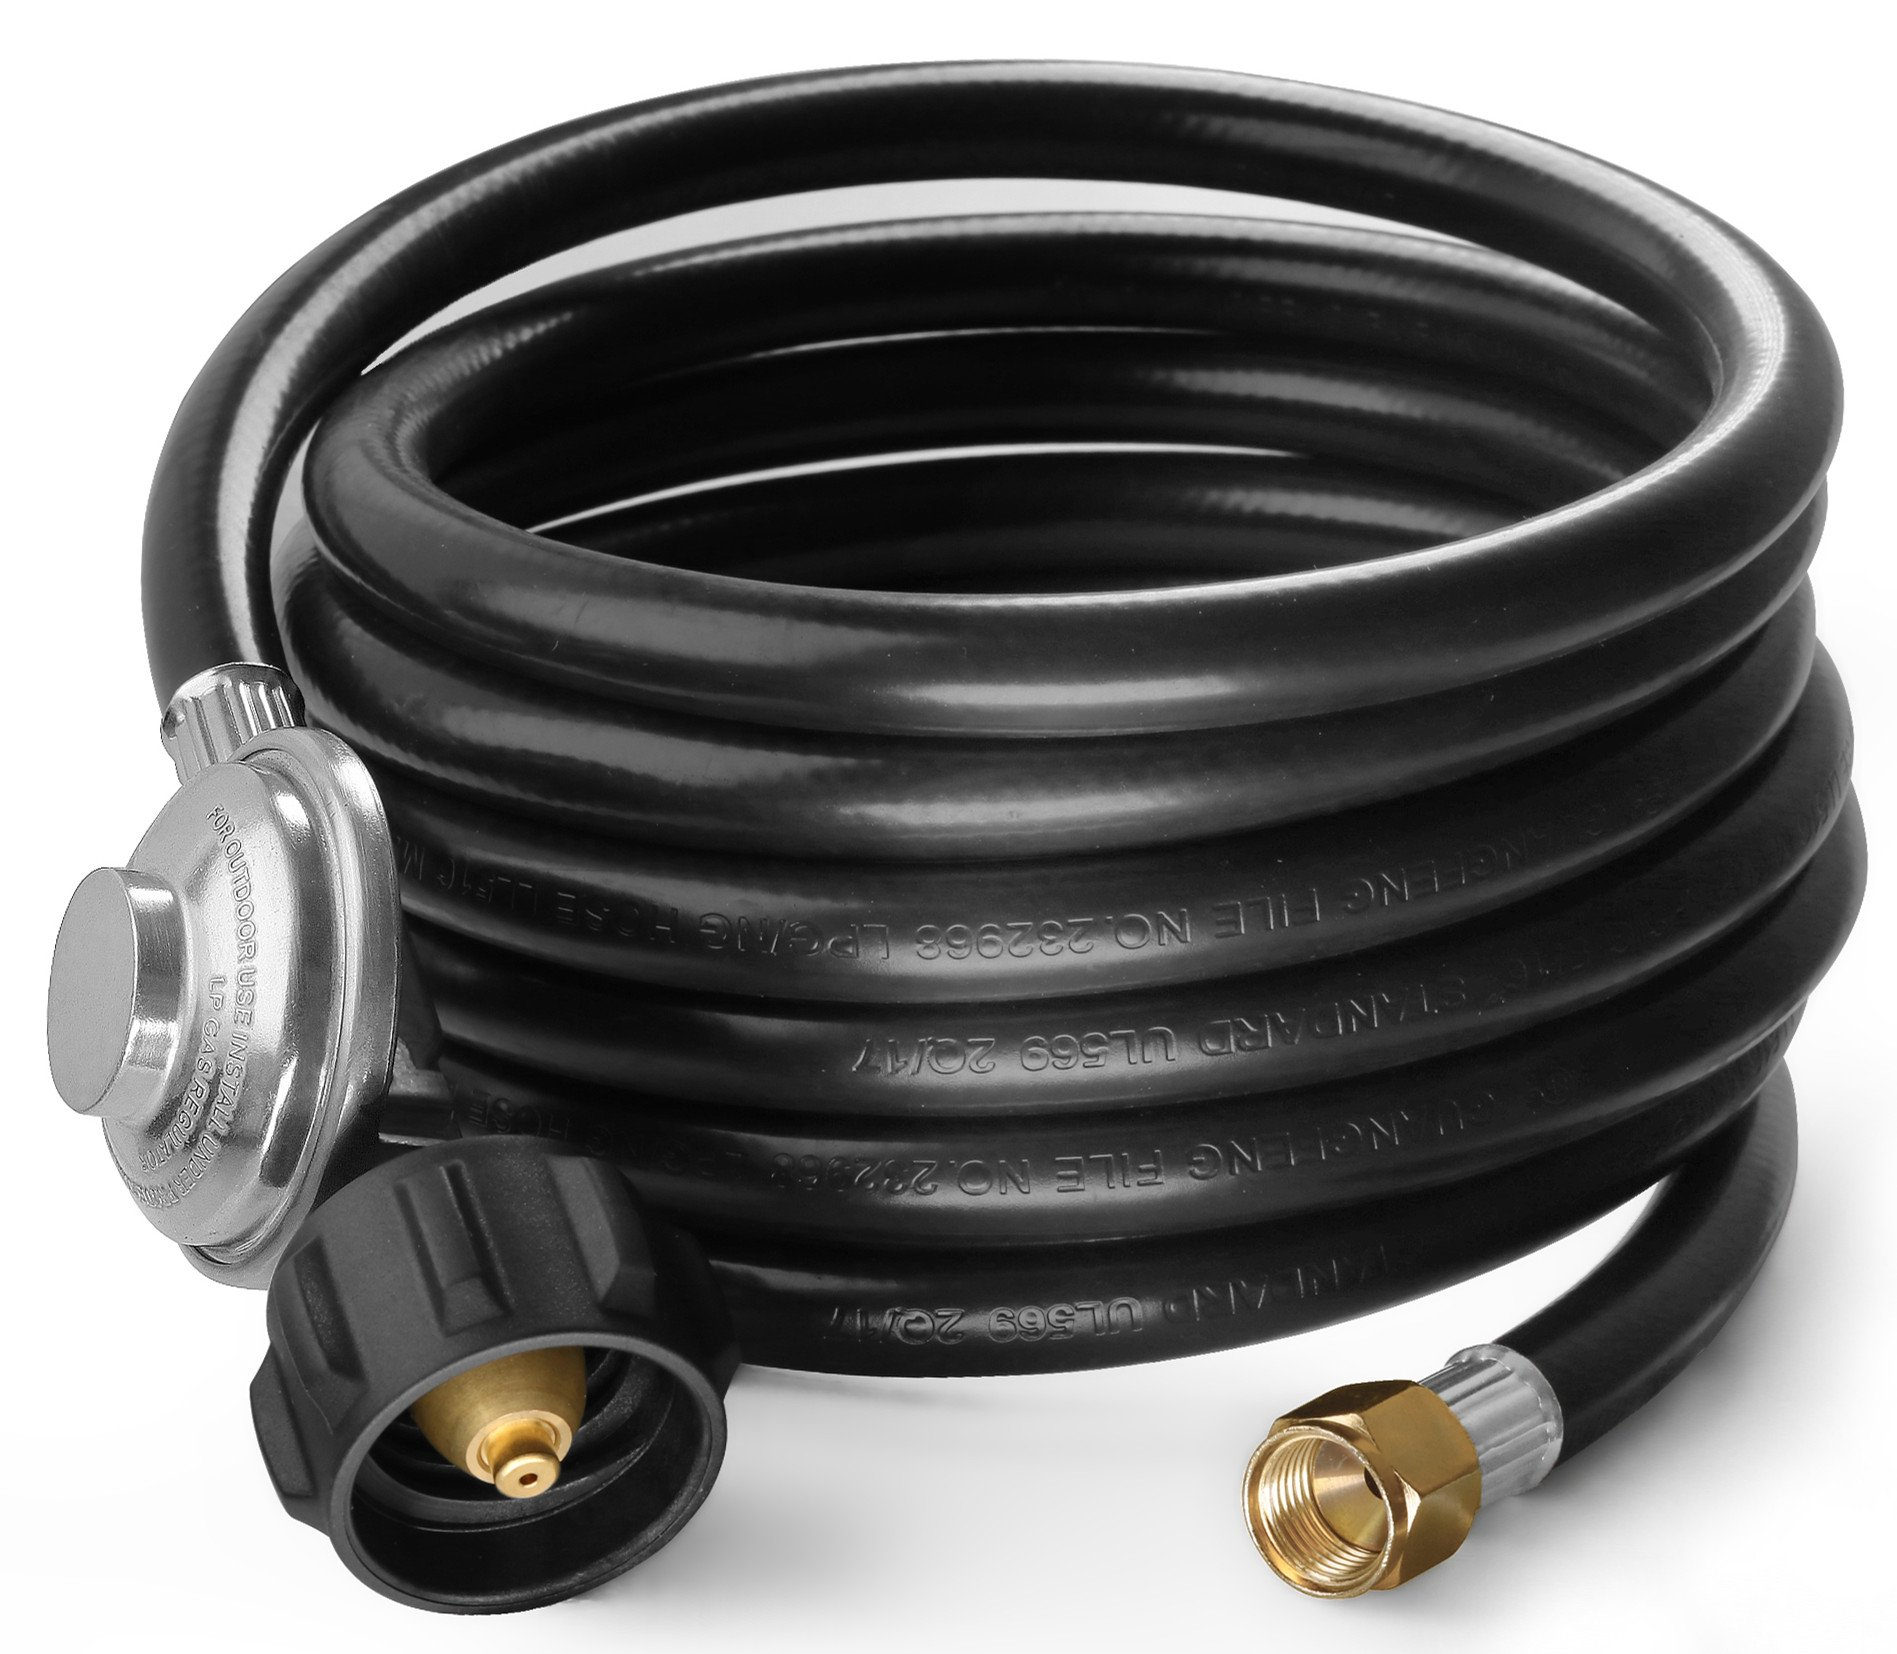 DOZYANT 12 Feet Universal QCC1 Low Pressure Propane Regulator Grill Replacement with 12 FT Hose for Most LP Gas Grill, Heater and Fire Pit Table, 3/8'' Female Flare Nut by DOZYANT